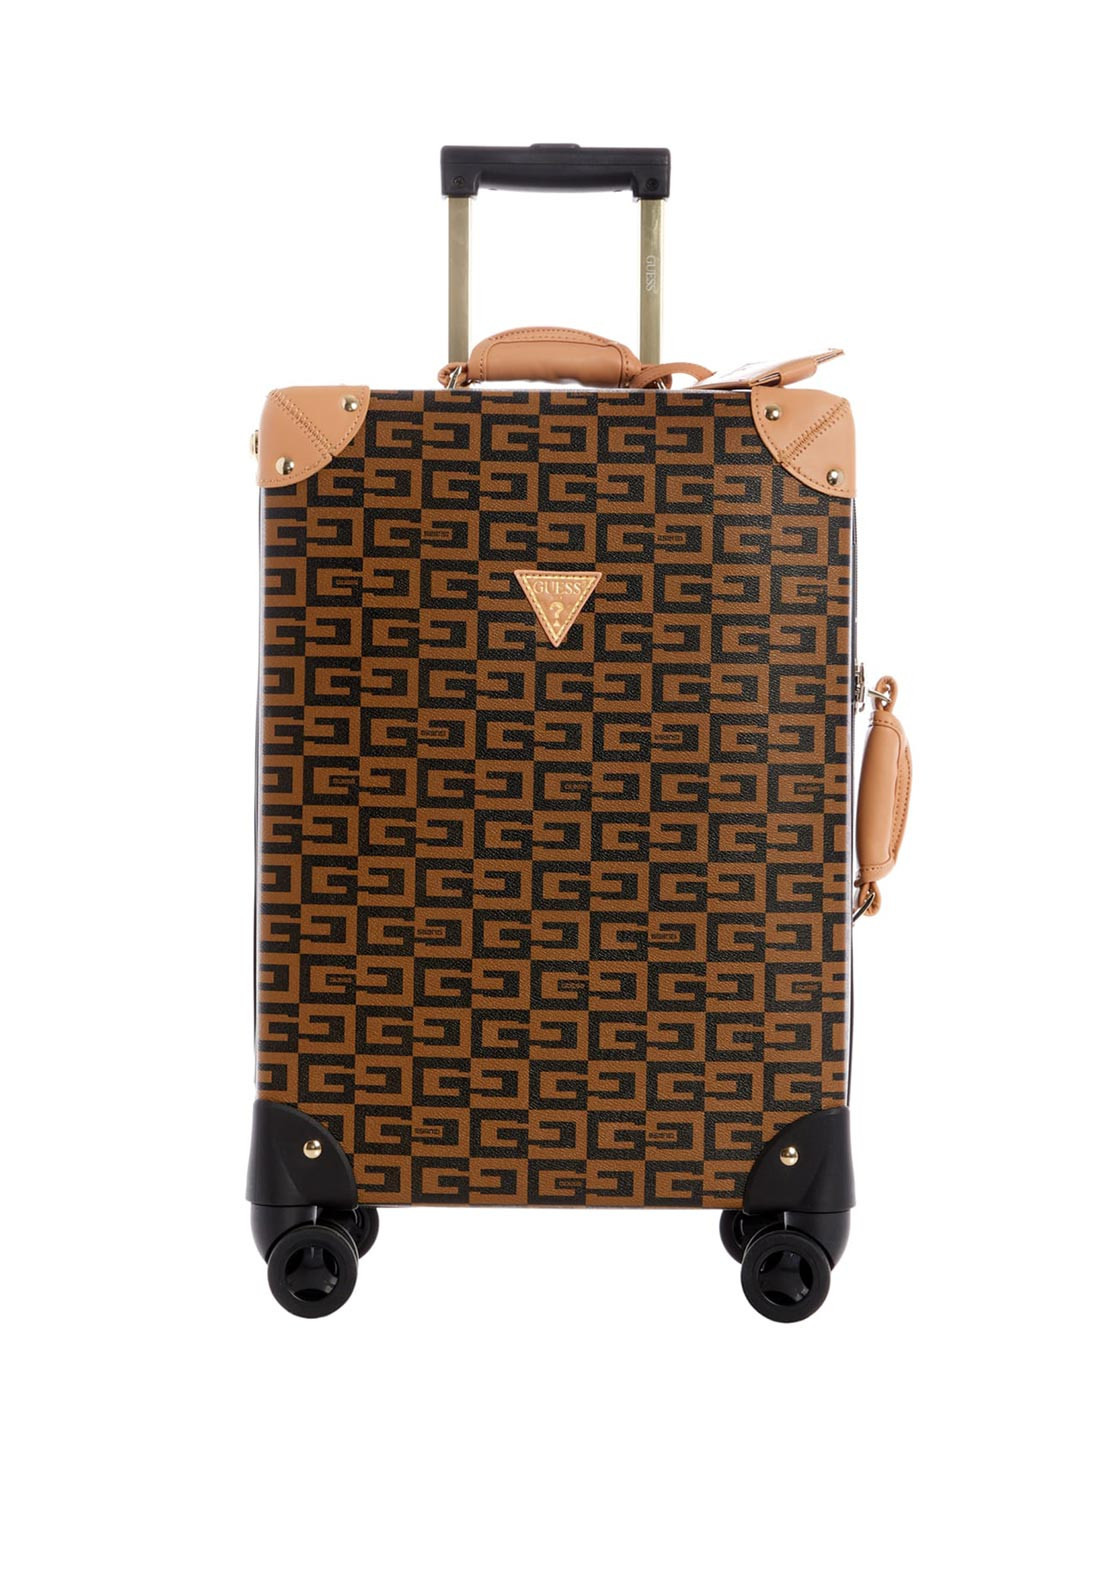 Guess 40th Anniversary Travel Medium 8 Wheel Spinner Suitcase, Brown